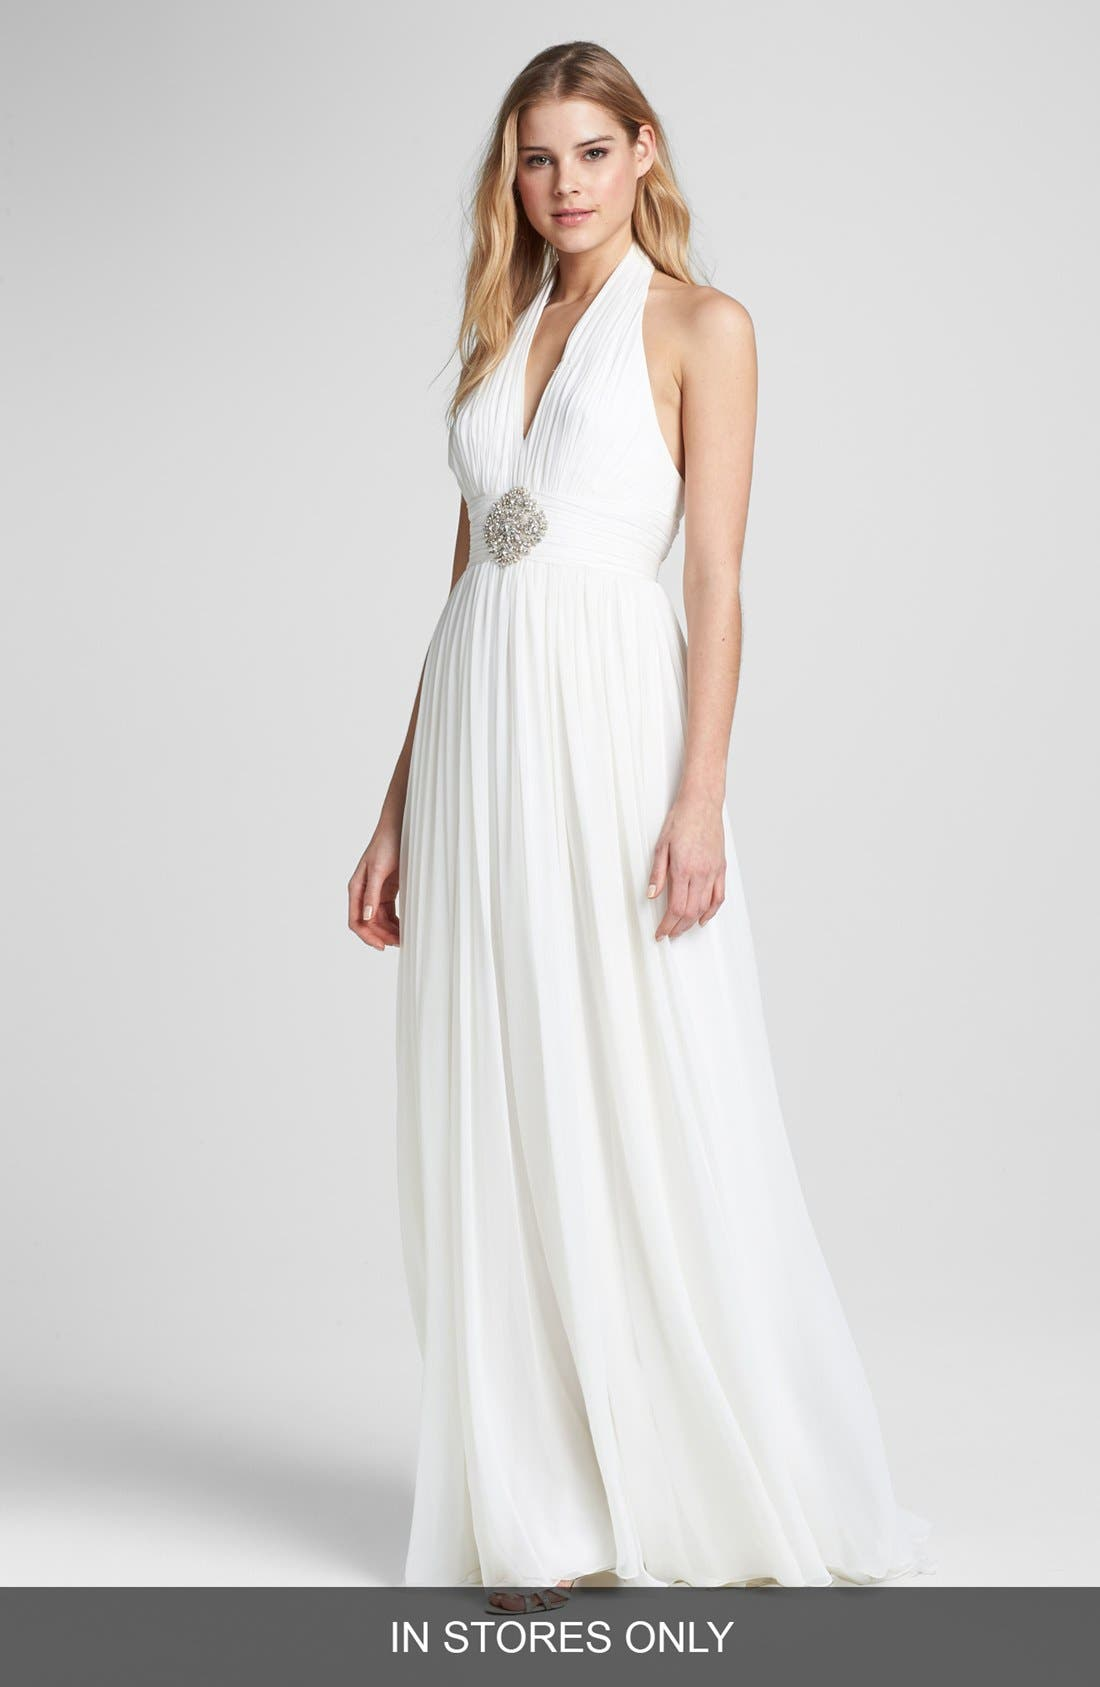 Main Image - Roses by Reem Acra 'Gardenia' Embellished Silk Dress (In Stores Only)